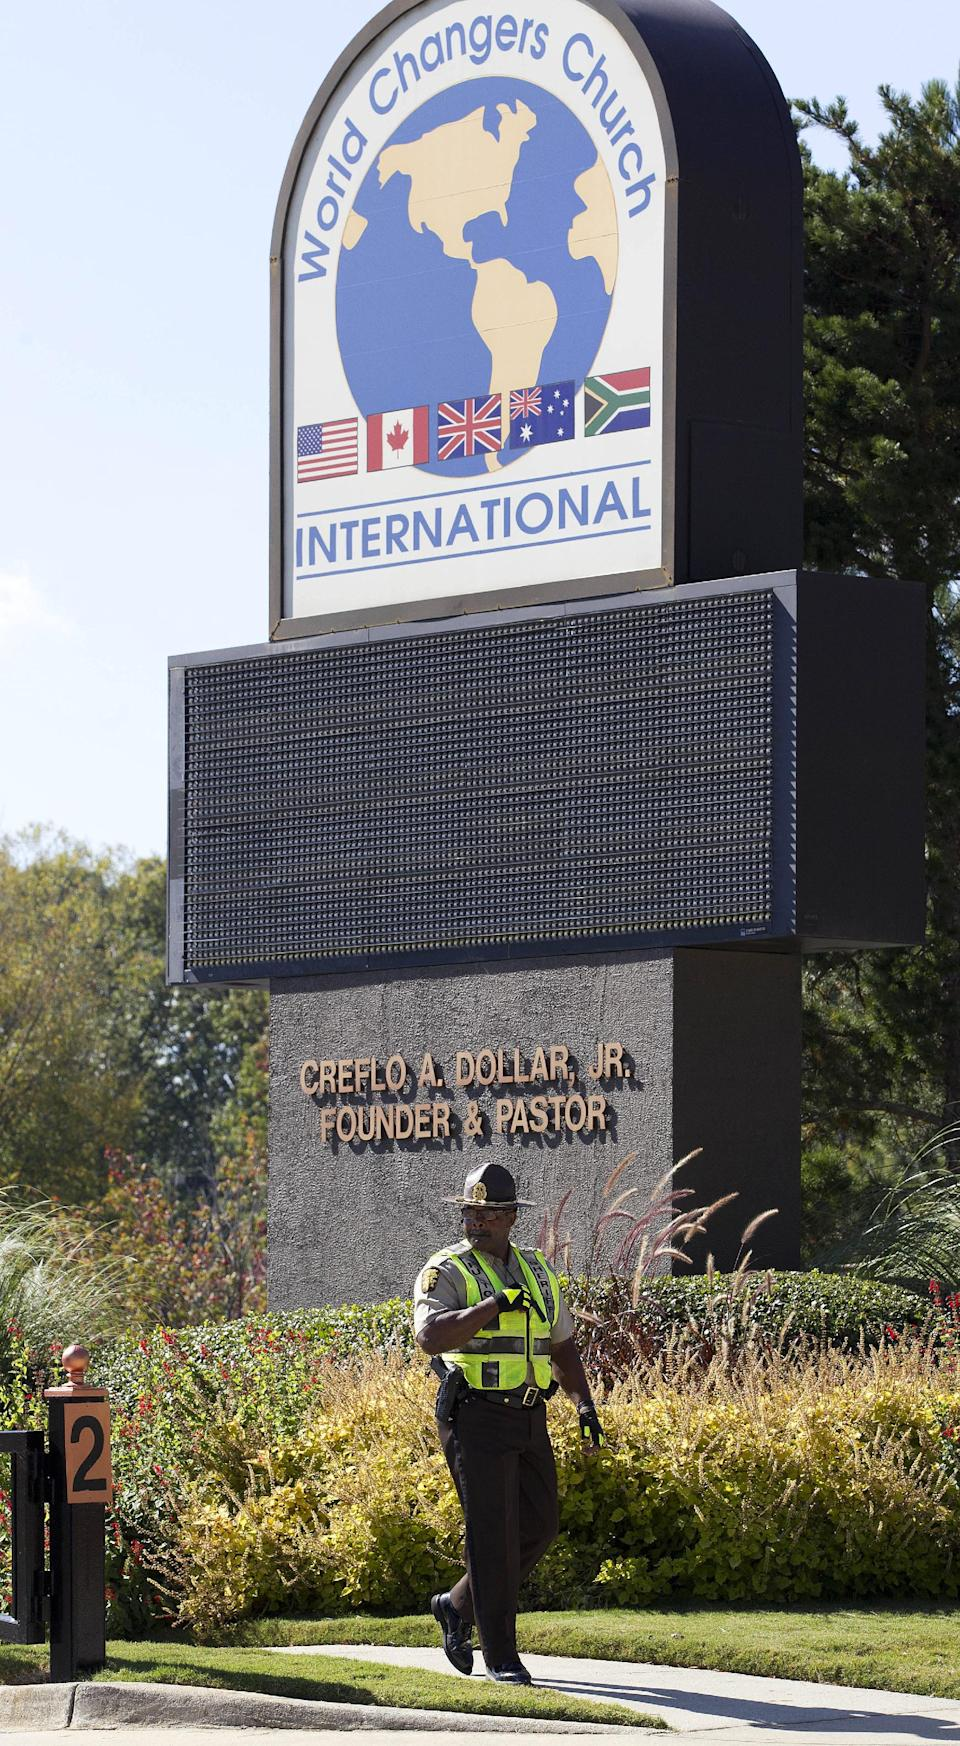 A Fulton County Sheriff's Deputy stands guard outside the World Changers International church in College Park, Ga., after a fatal shooting inside Wednesday, Oct. 24, 2012. Police say a volunteer leading a prayer service was shot and killed by a former church employee.  (AP Photo/John Bazemore)